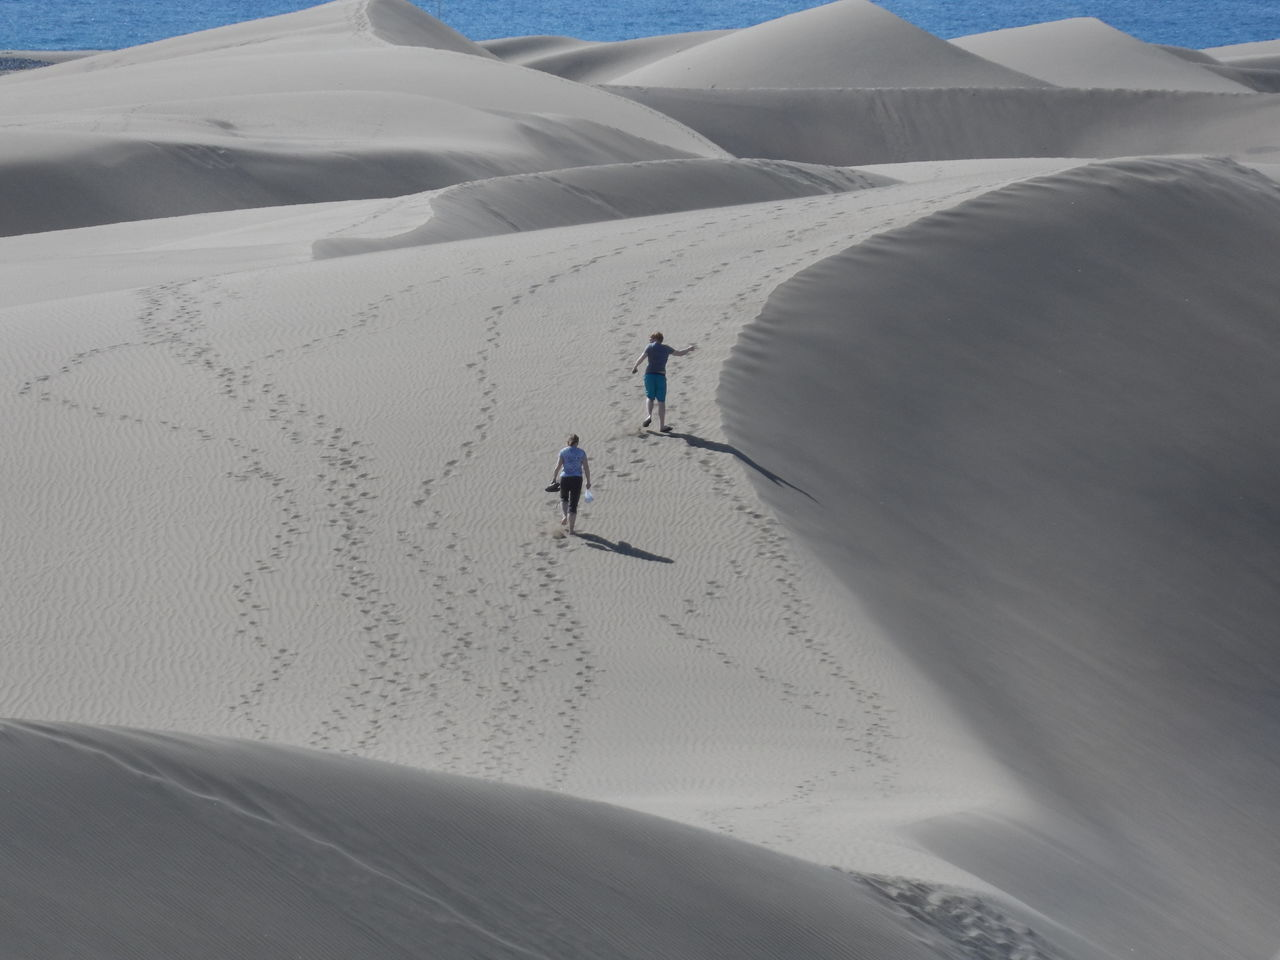 Dune walking Adventure Aerial View Beauty In Nature Canary Islands Desert Landscape Leisure Activity Maspalomas Nature Outdoors Sand Sand Dune Shadow SPAIN Tourist Tranquility Travel Two People Vacations Walking